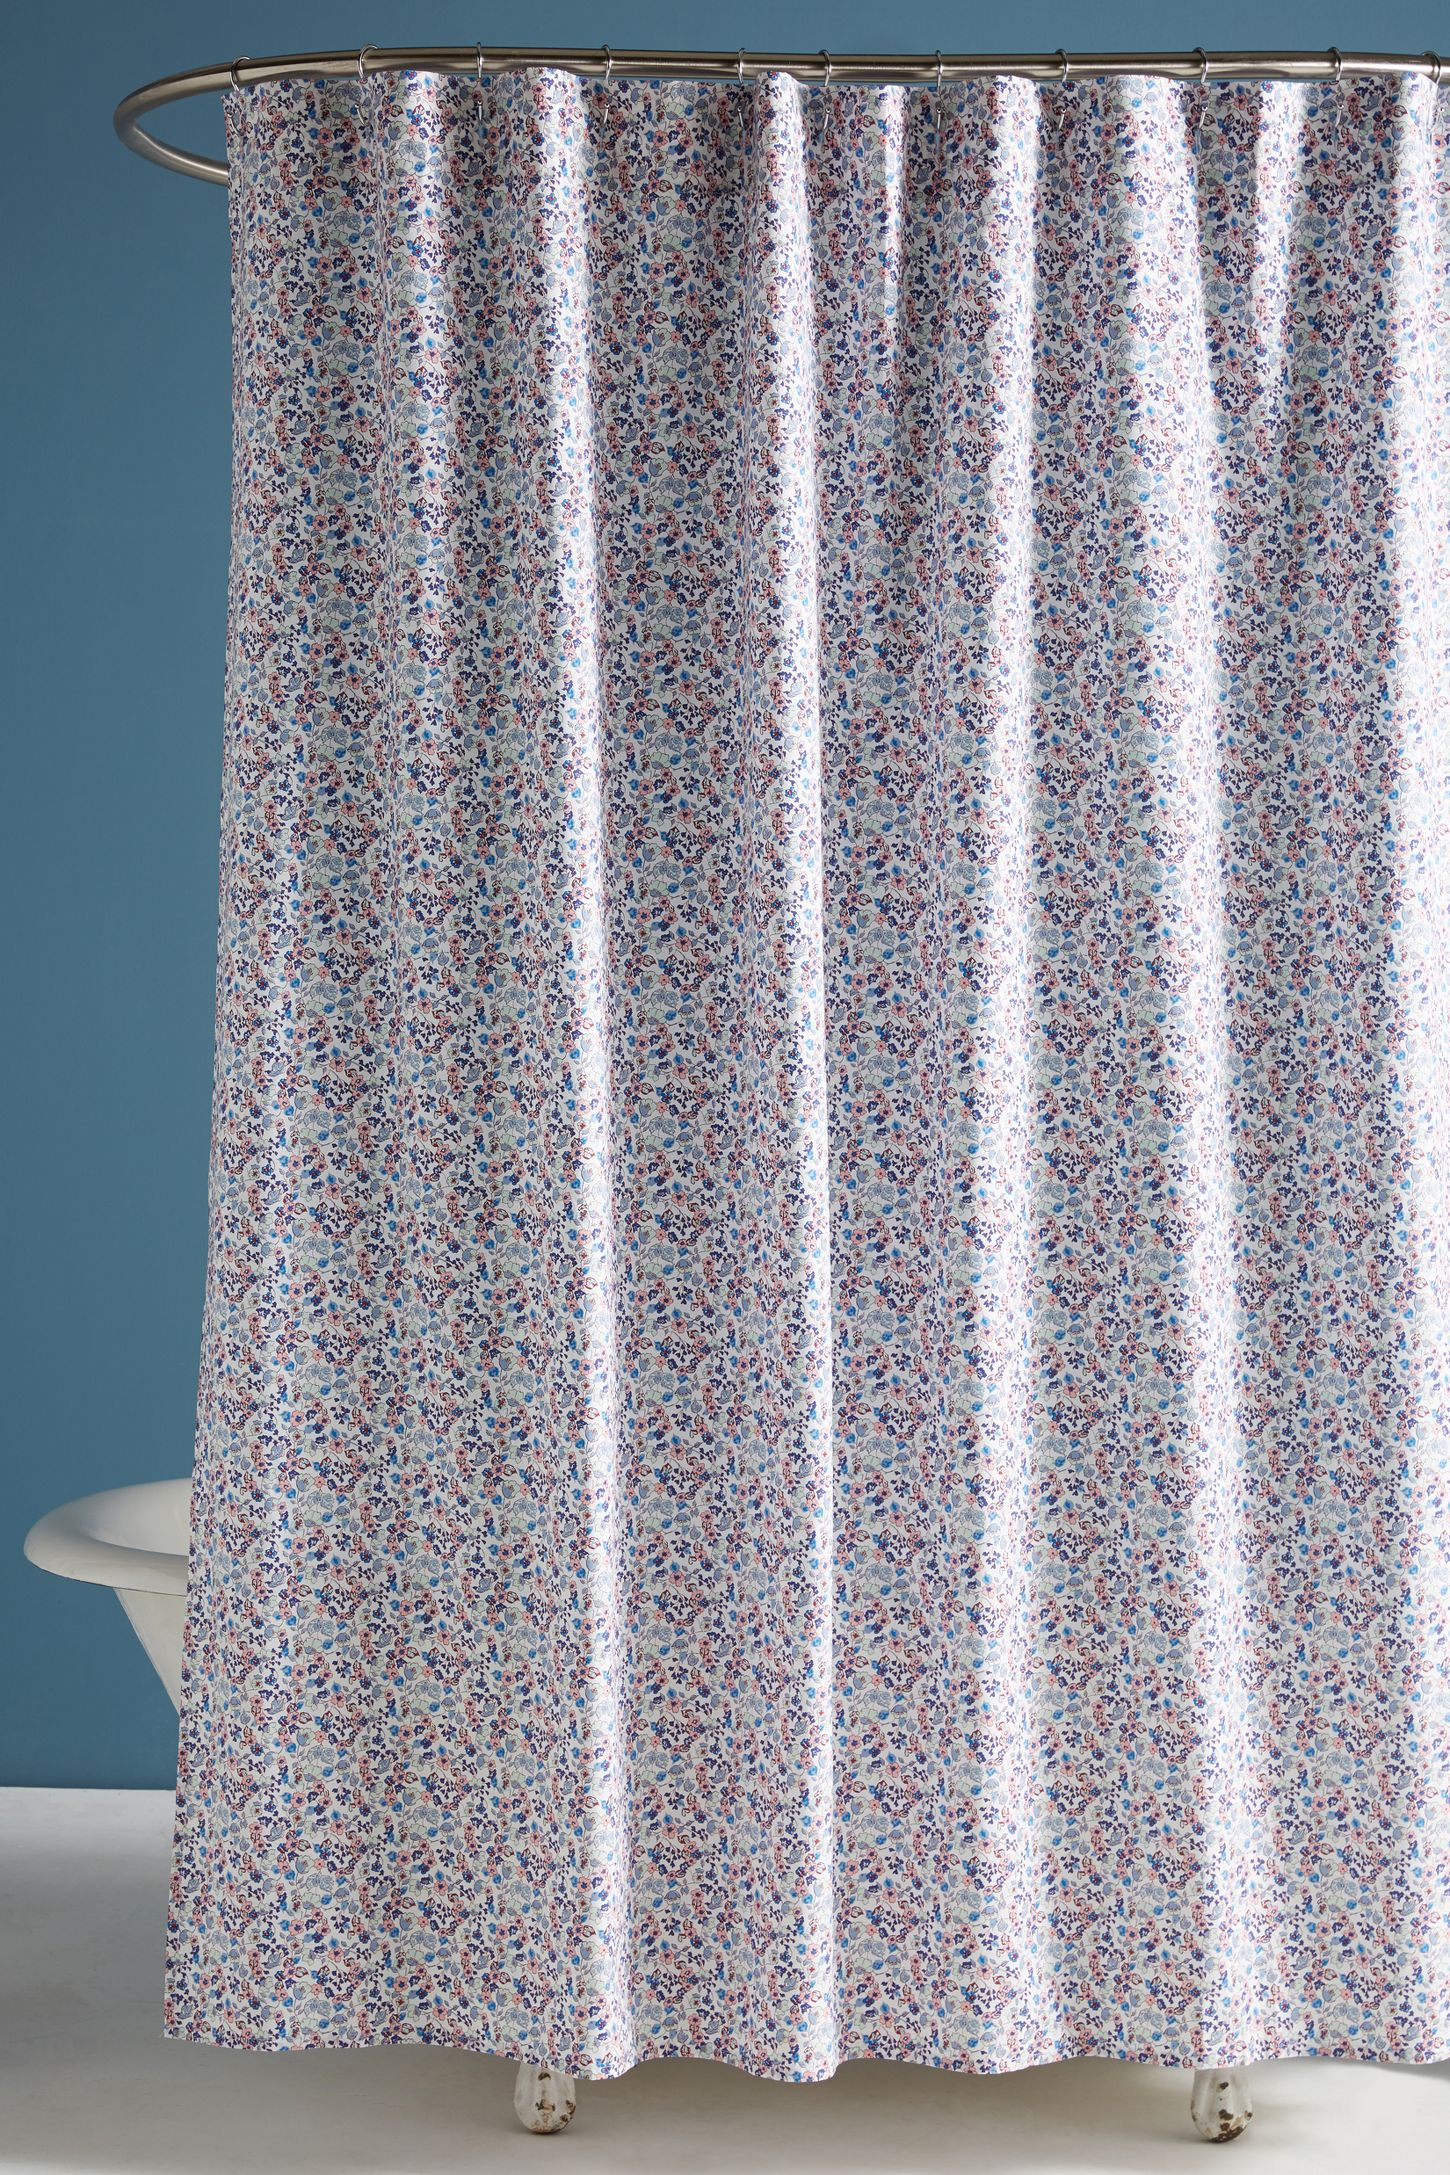 Bathroom shower curtains and matching accessories - Liberty For Anthropologie Bonnie Bloom Shower Curtain